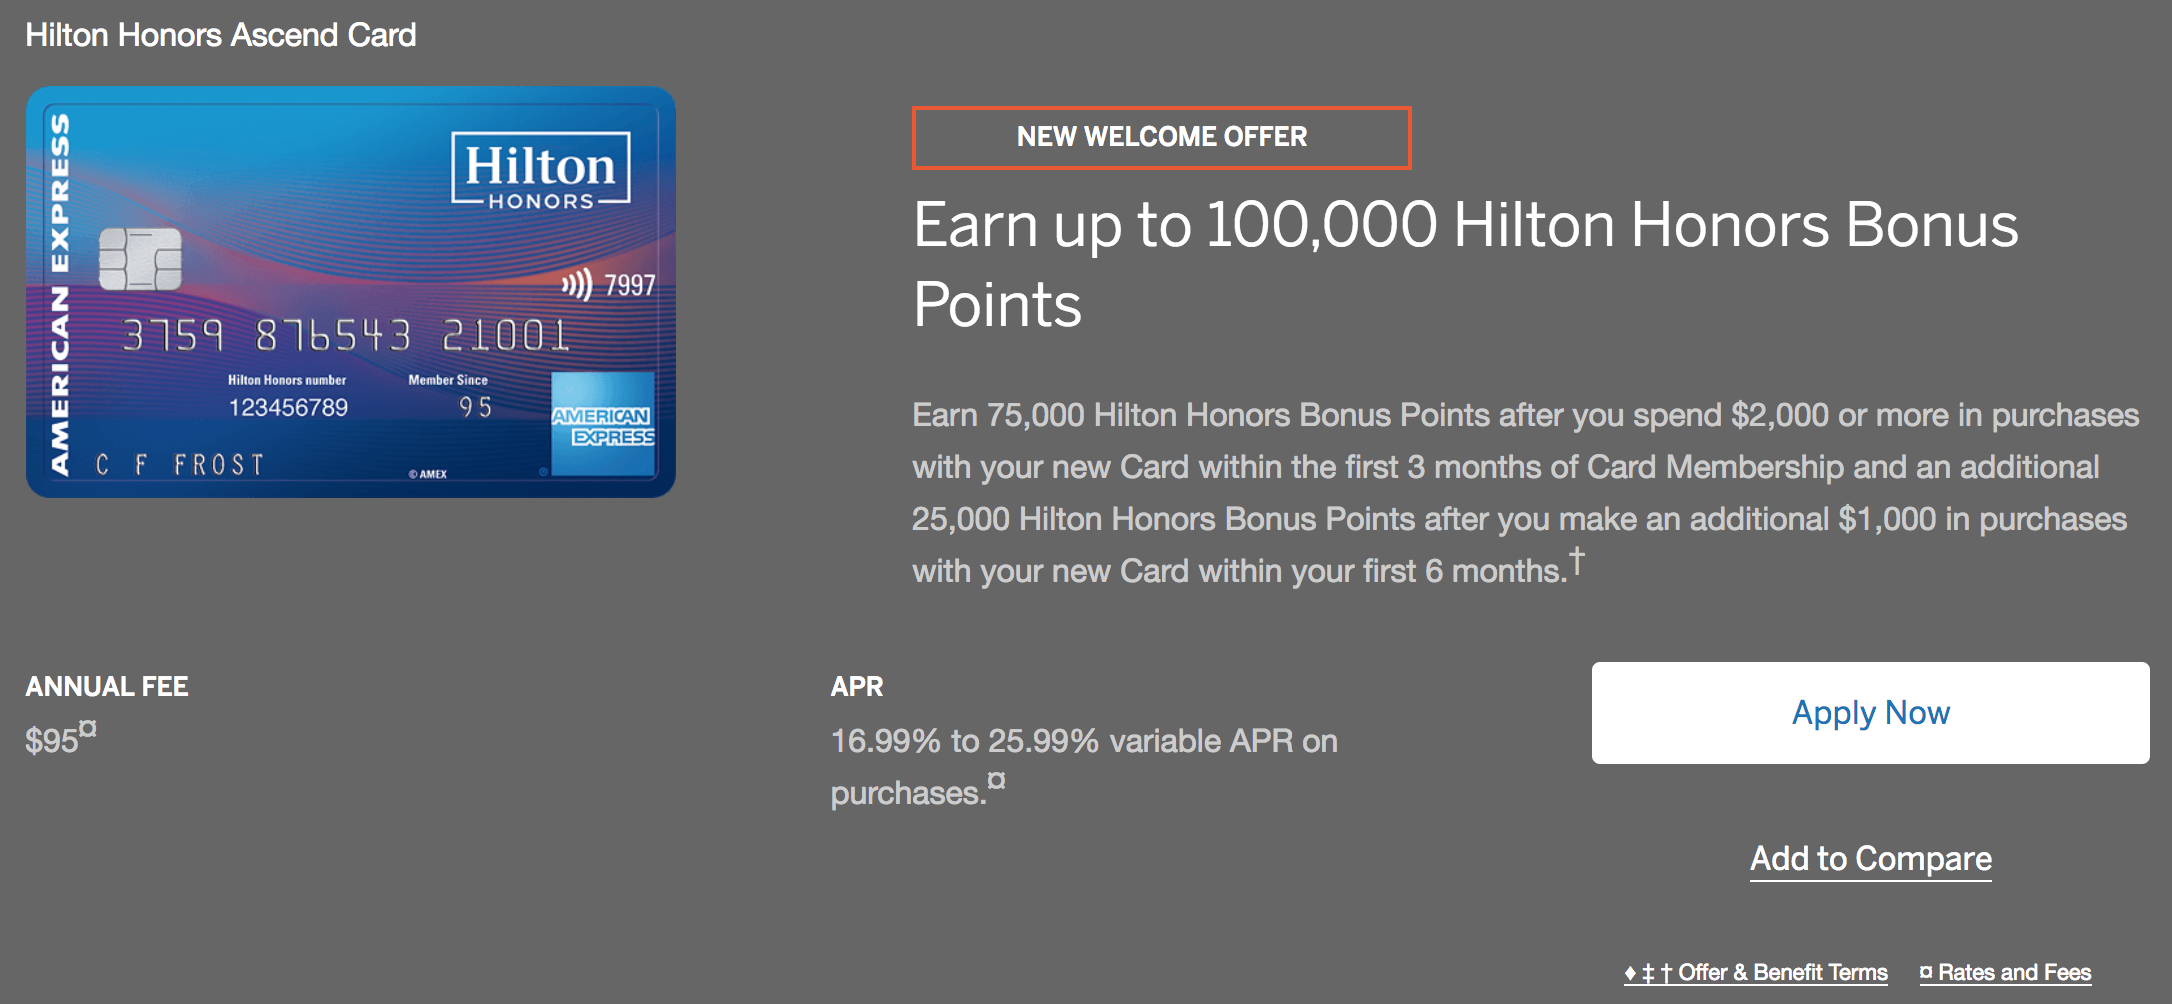 American Express is currently offering up to 100,000 Hilton Honors points for new cardholders  (click to enlarge).